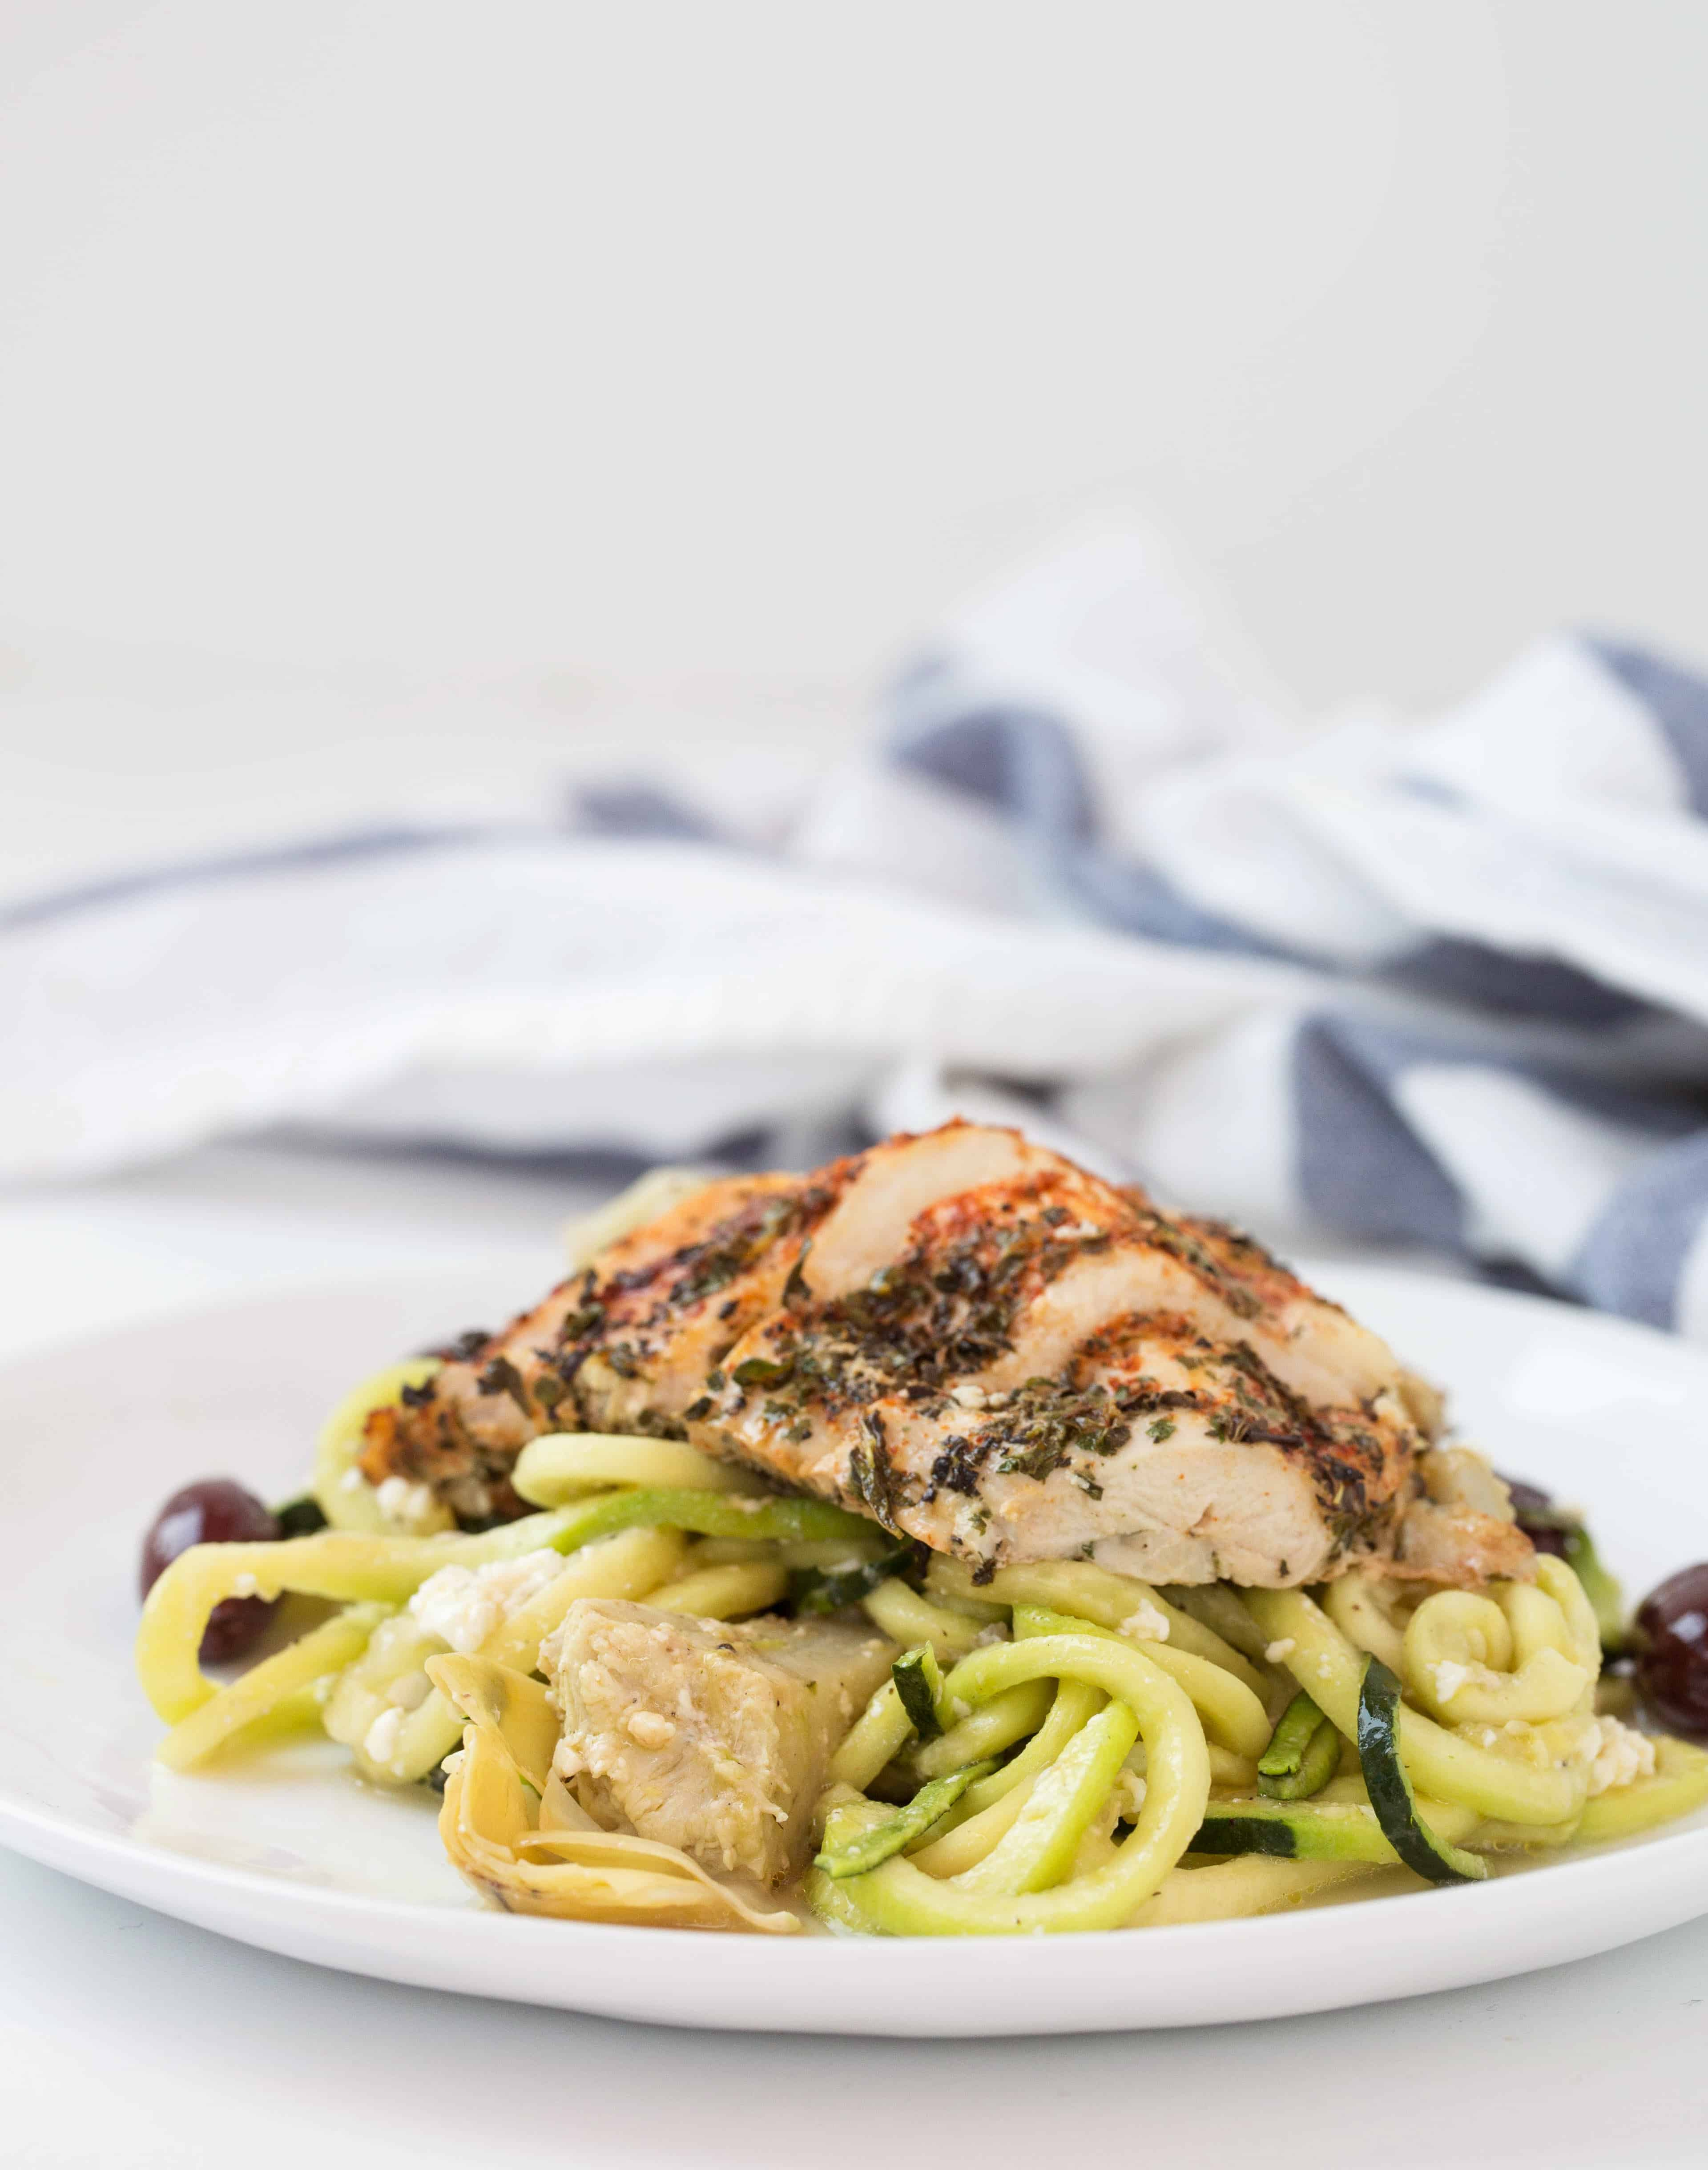 Lemon-Herb Chicken and Roasted Artichoke Zucchini Pasta with Feta